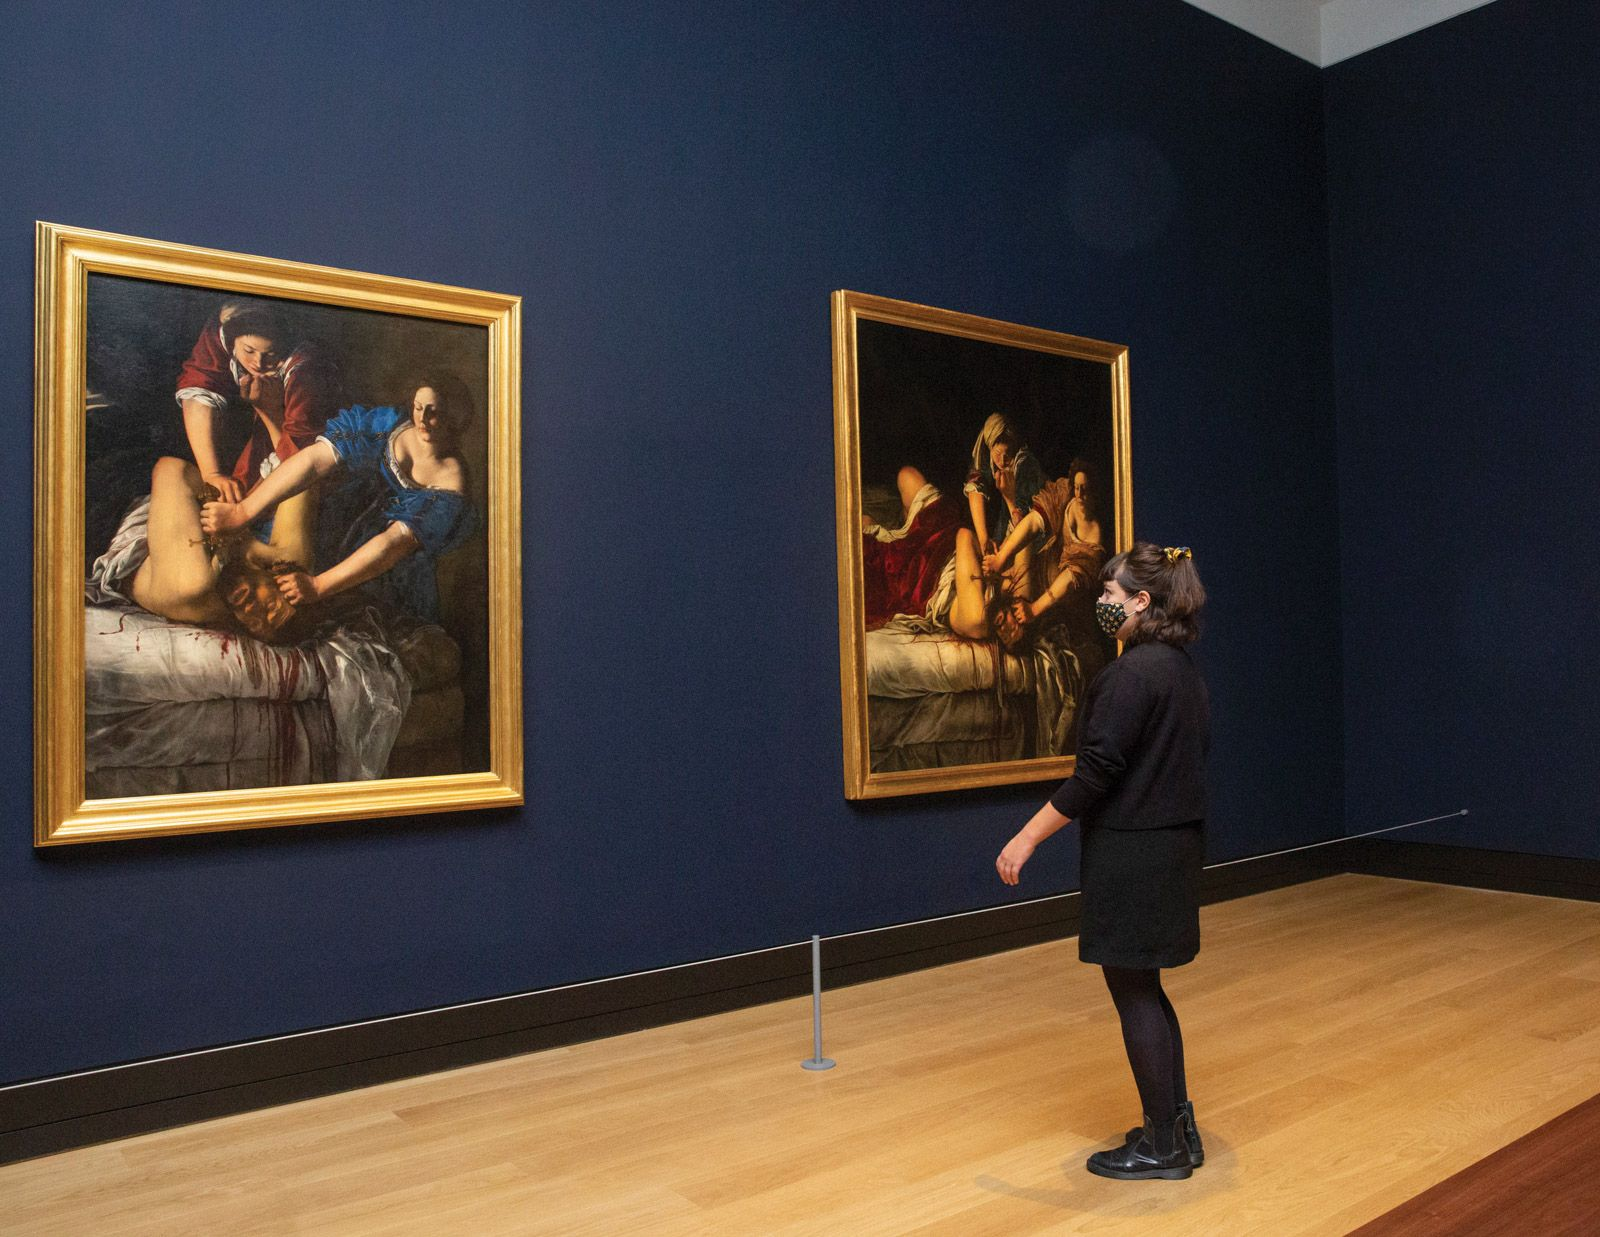 Artemisia at the National Gallery is currently closed in accordance with a second national lockdown across England